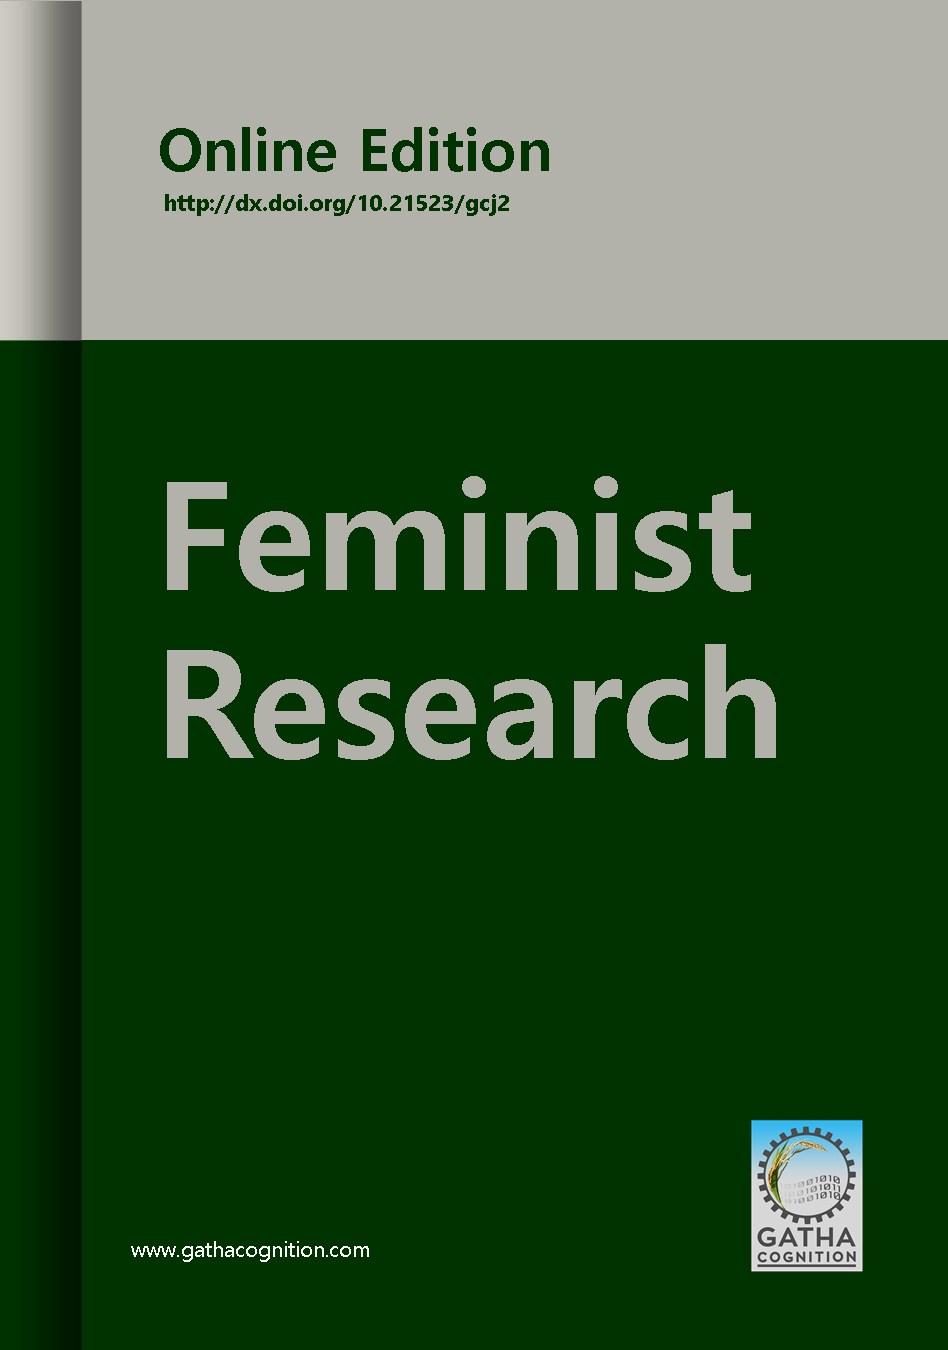 Moroccan Women's Resistance to Al-hogra in the Aftermaths of Arab Spring: Patterns and Outcomes